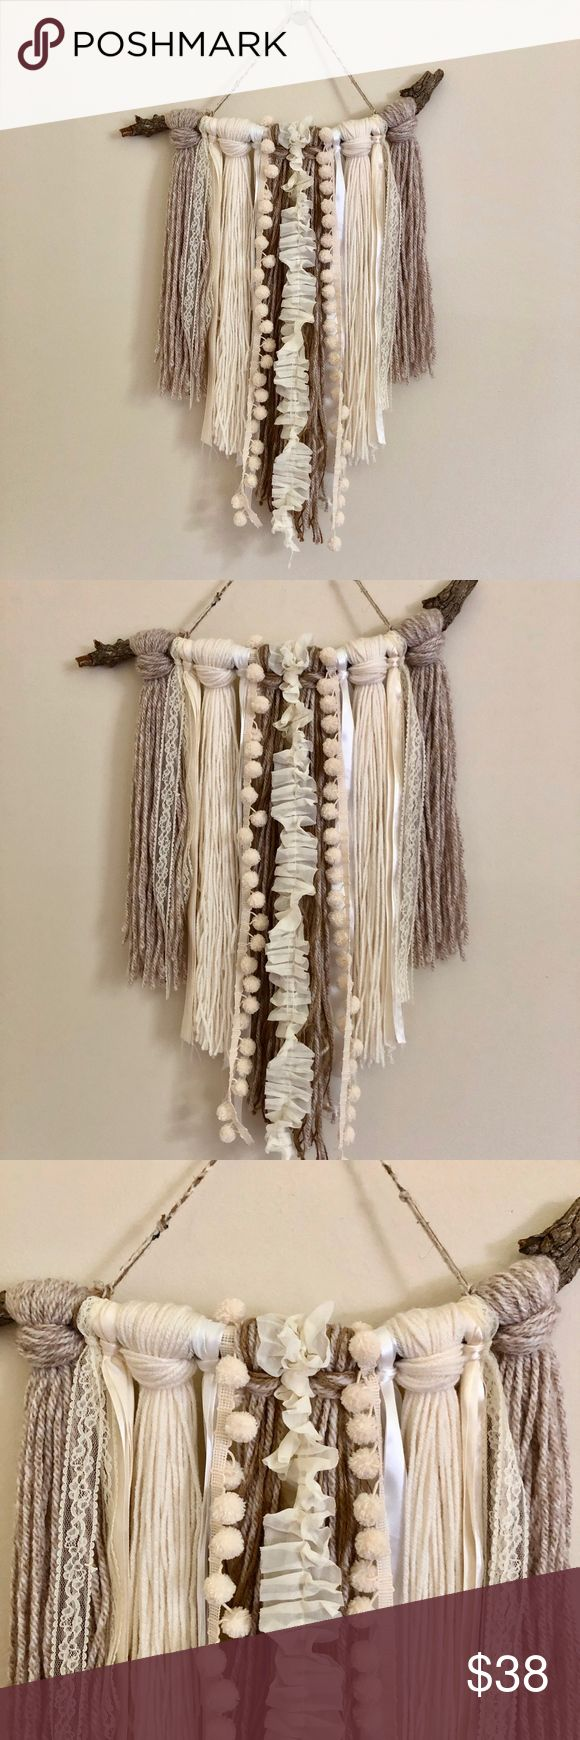 Bohemian Wall Hanger Art Bohemian, nature inspired wall hanger, is a slightly tw...